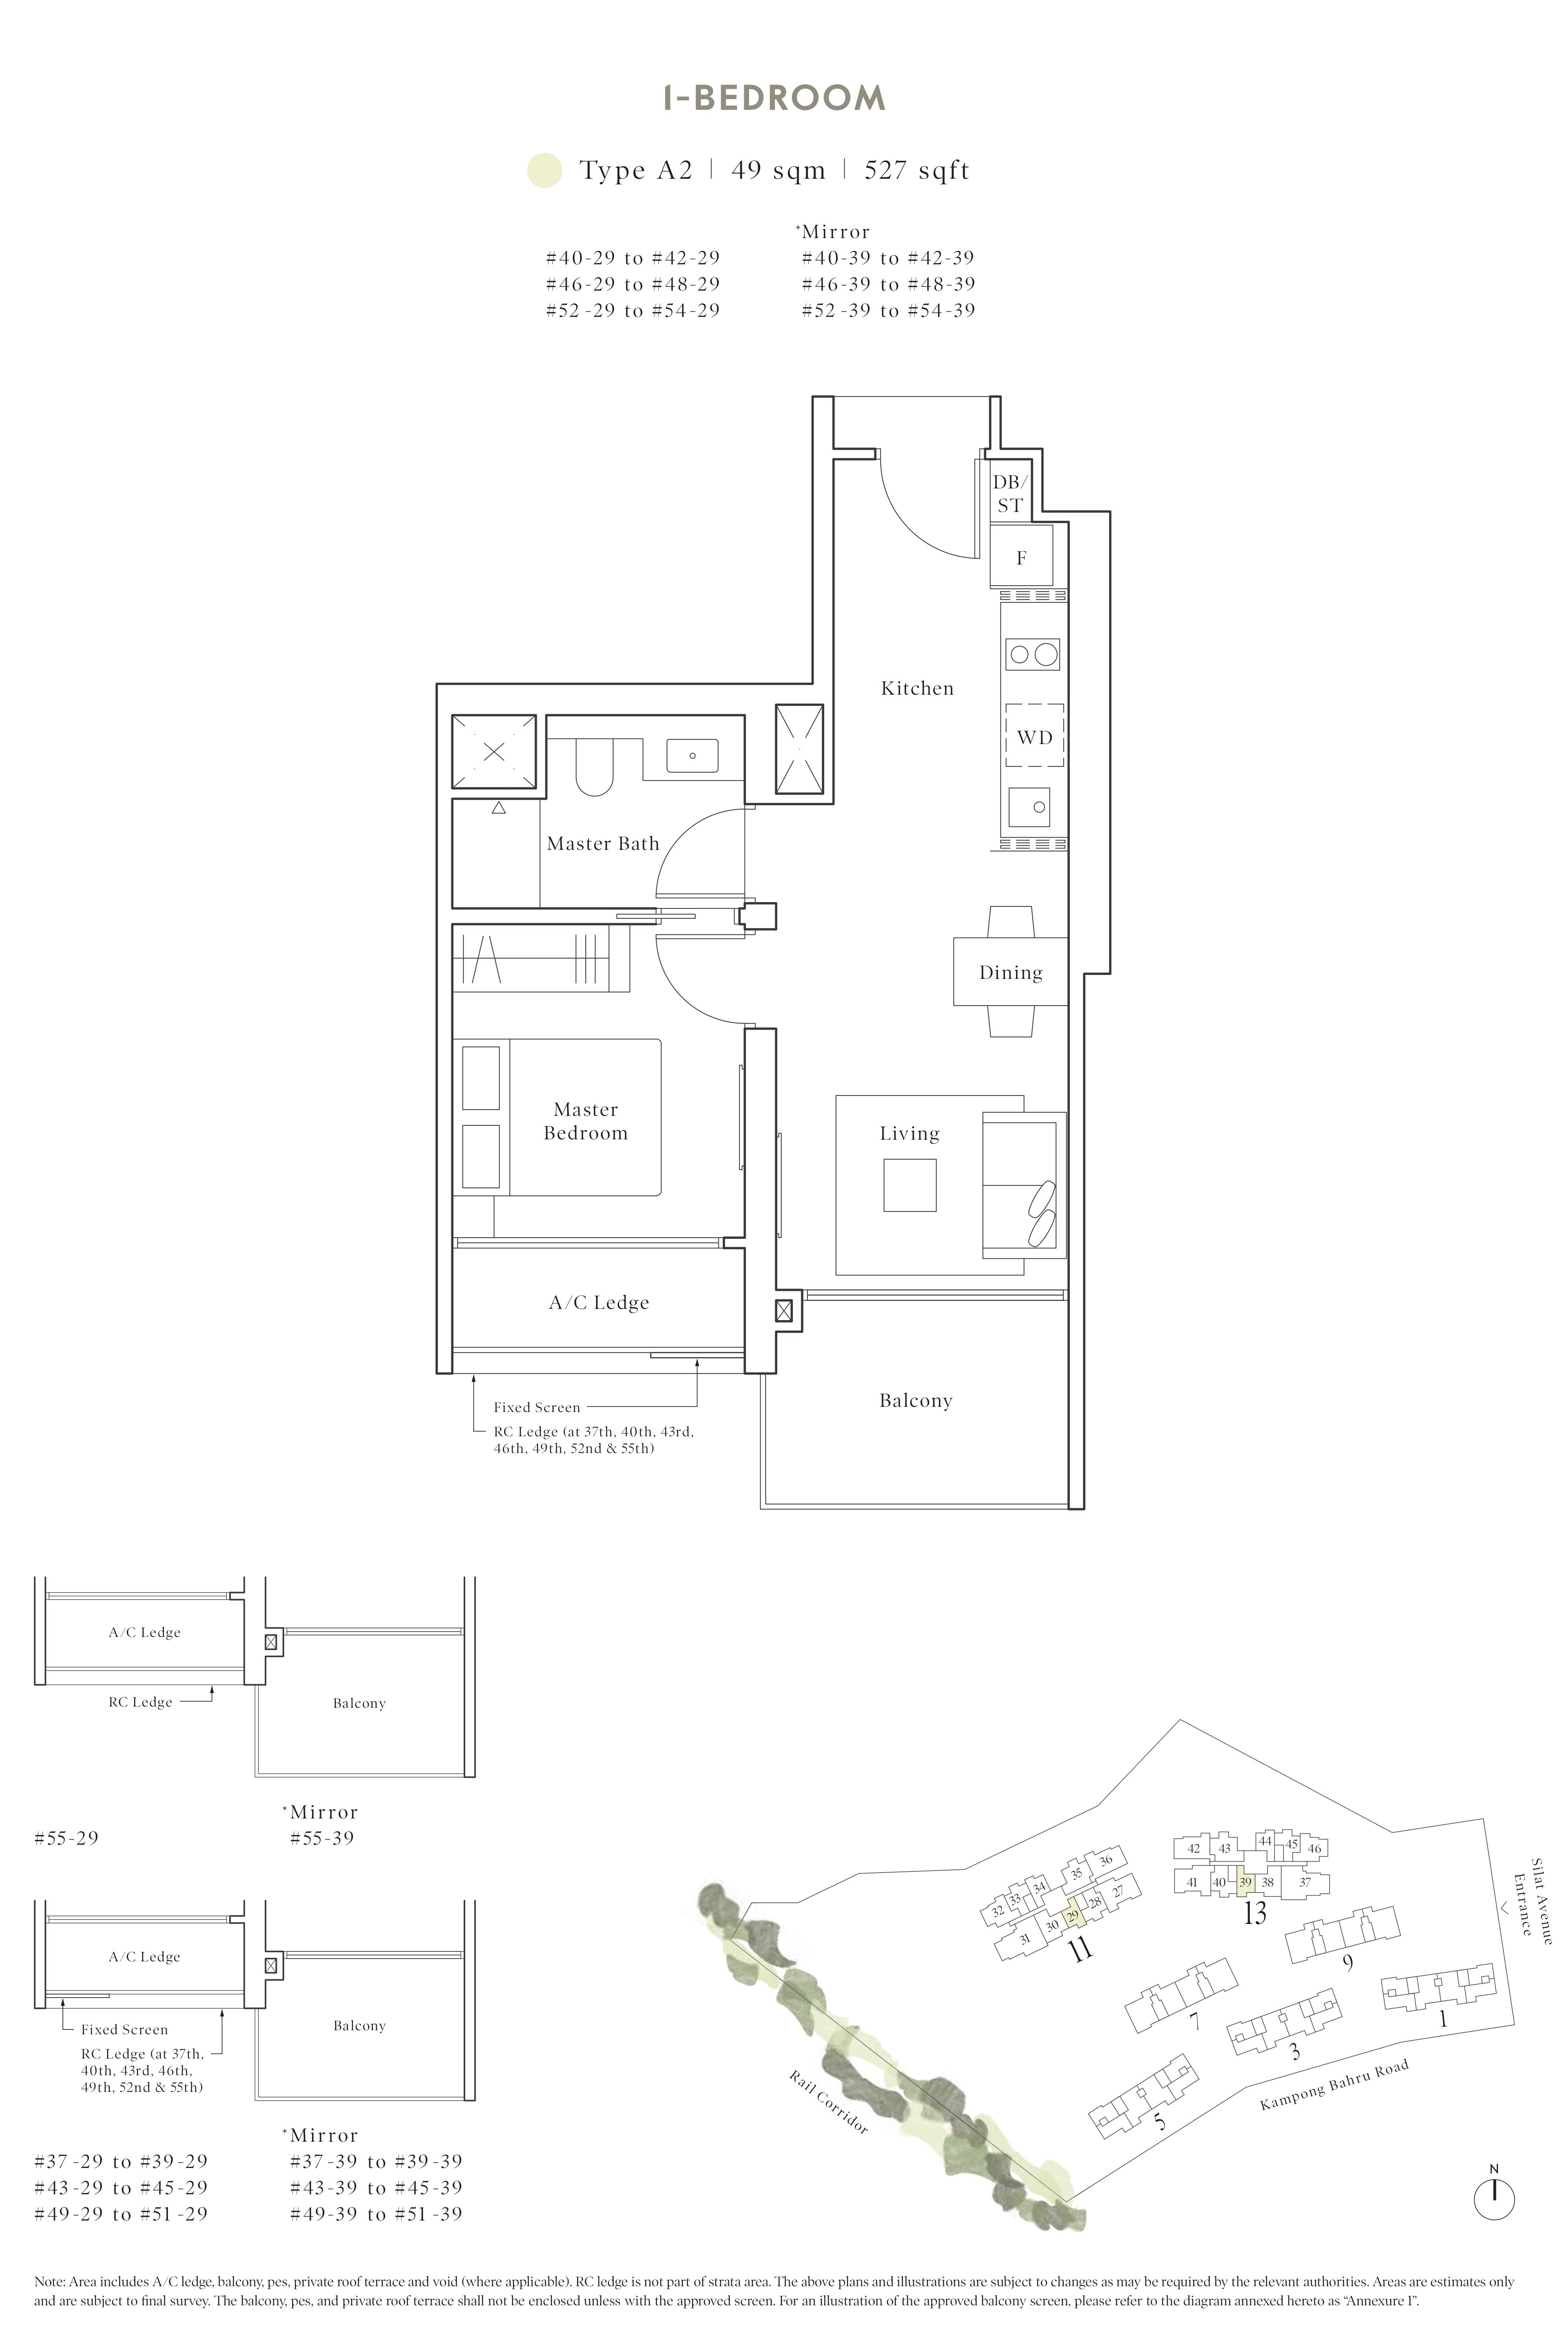 Avenue South Residence 南峰雅苑 peak floor plan 1-bedroom a2